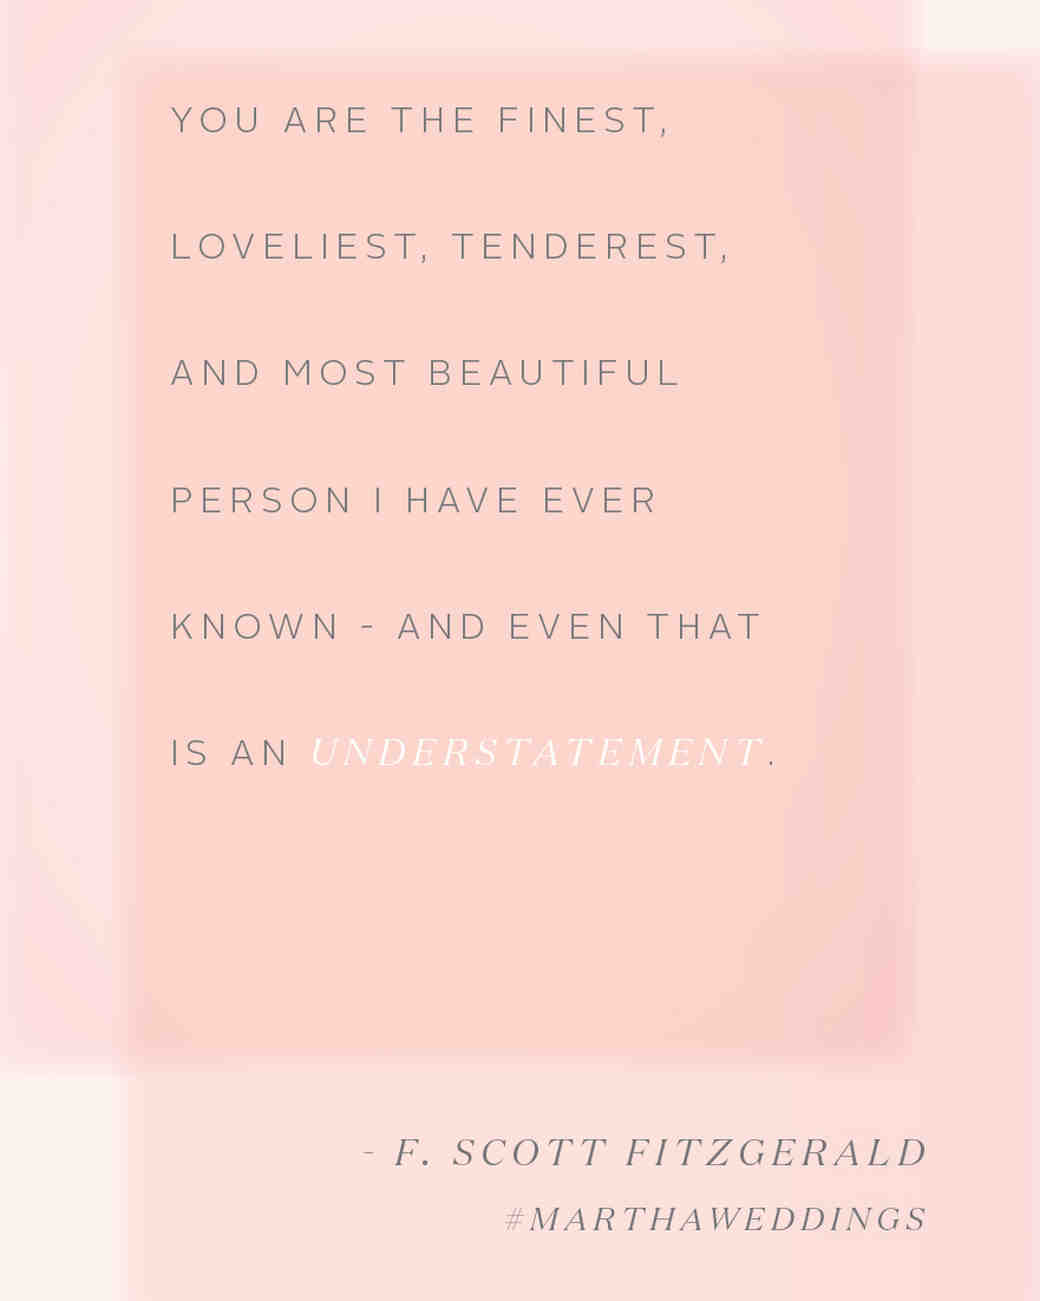 Love Quotes F Scott Fitzgerald Gorgeous The 20 Best Love Quotes Of All Time  Martha Stewart Weddings